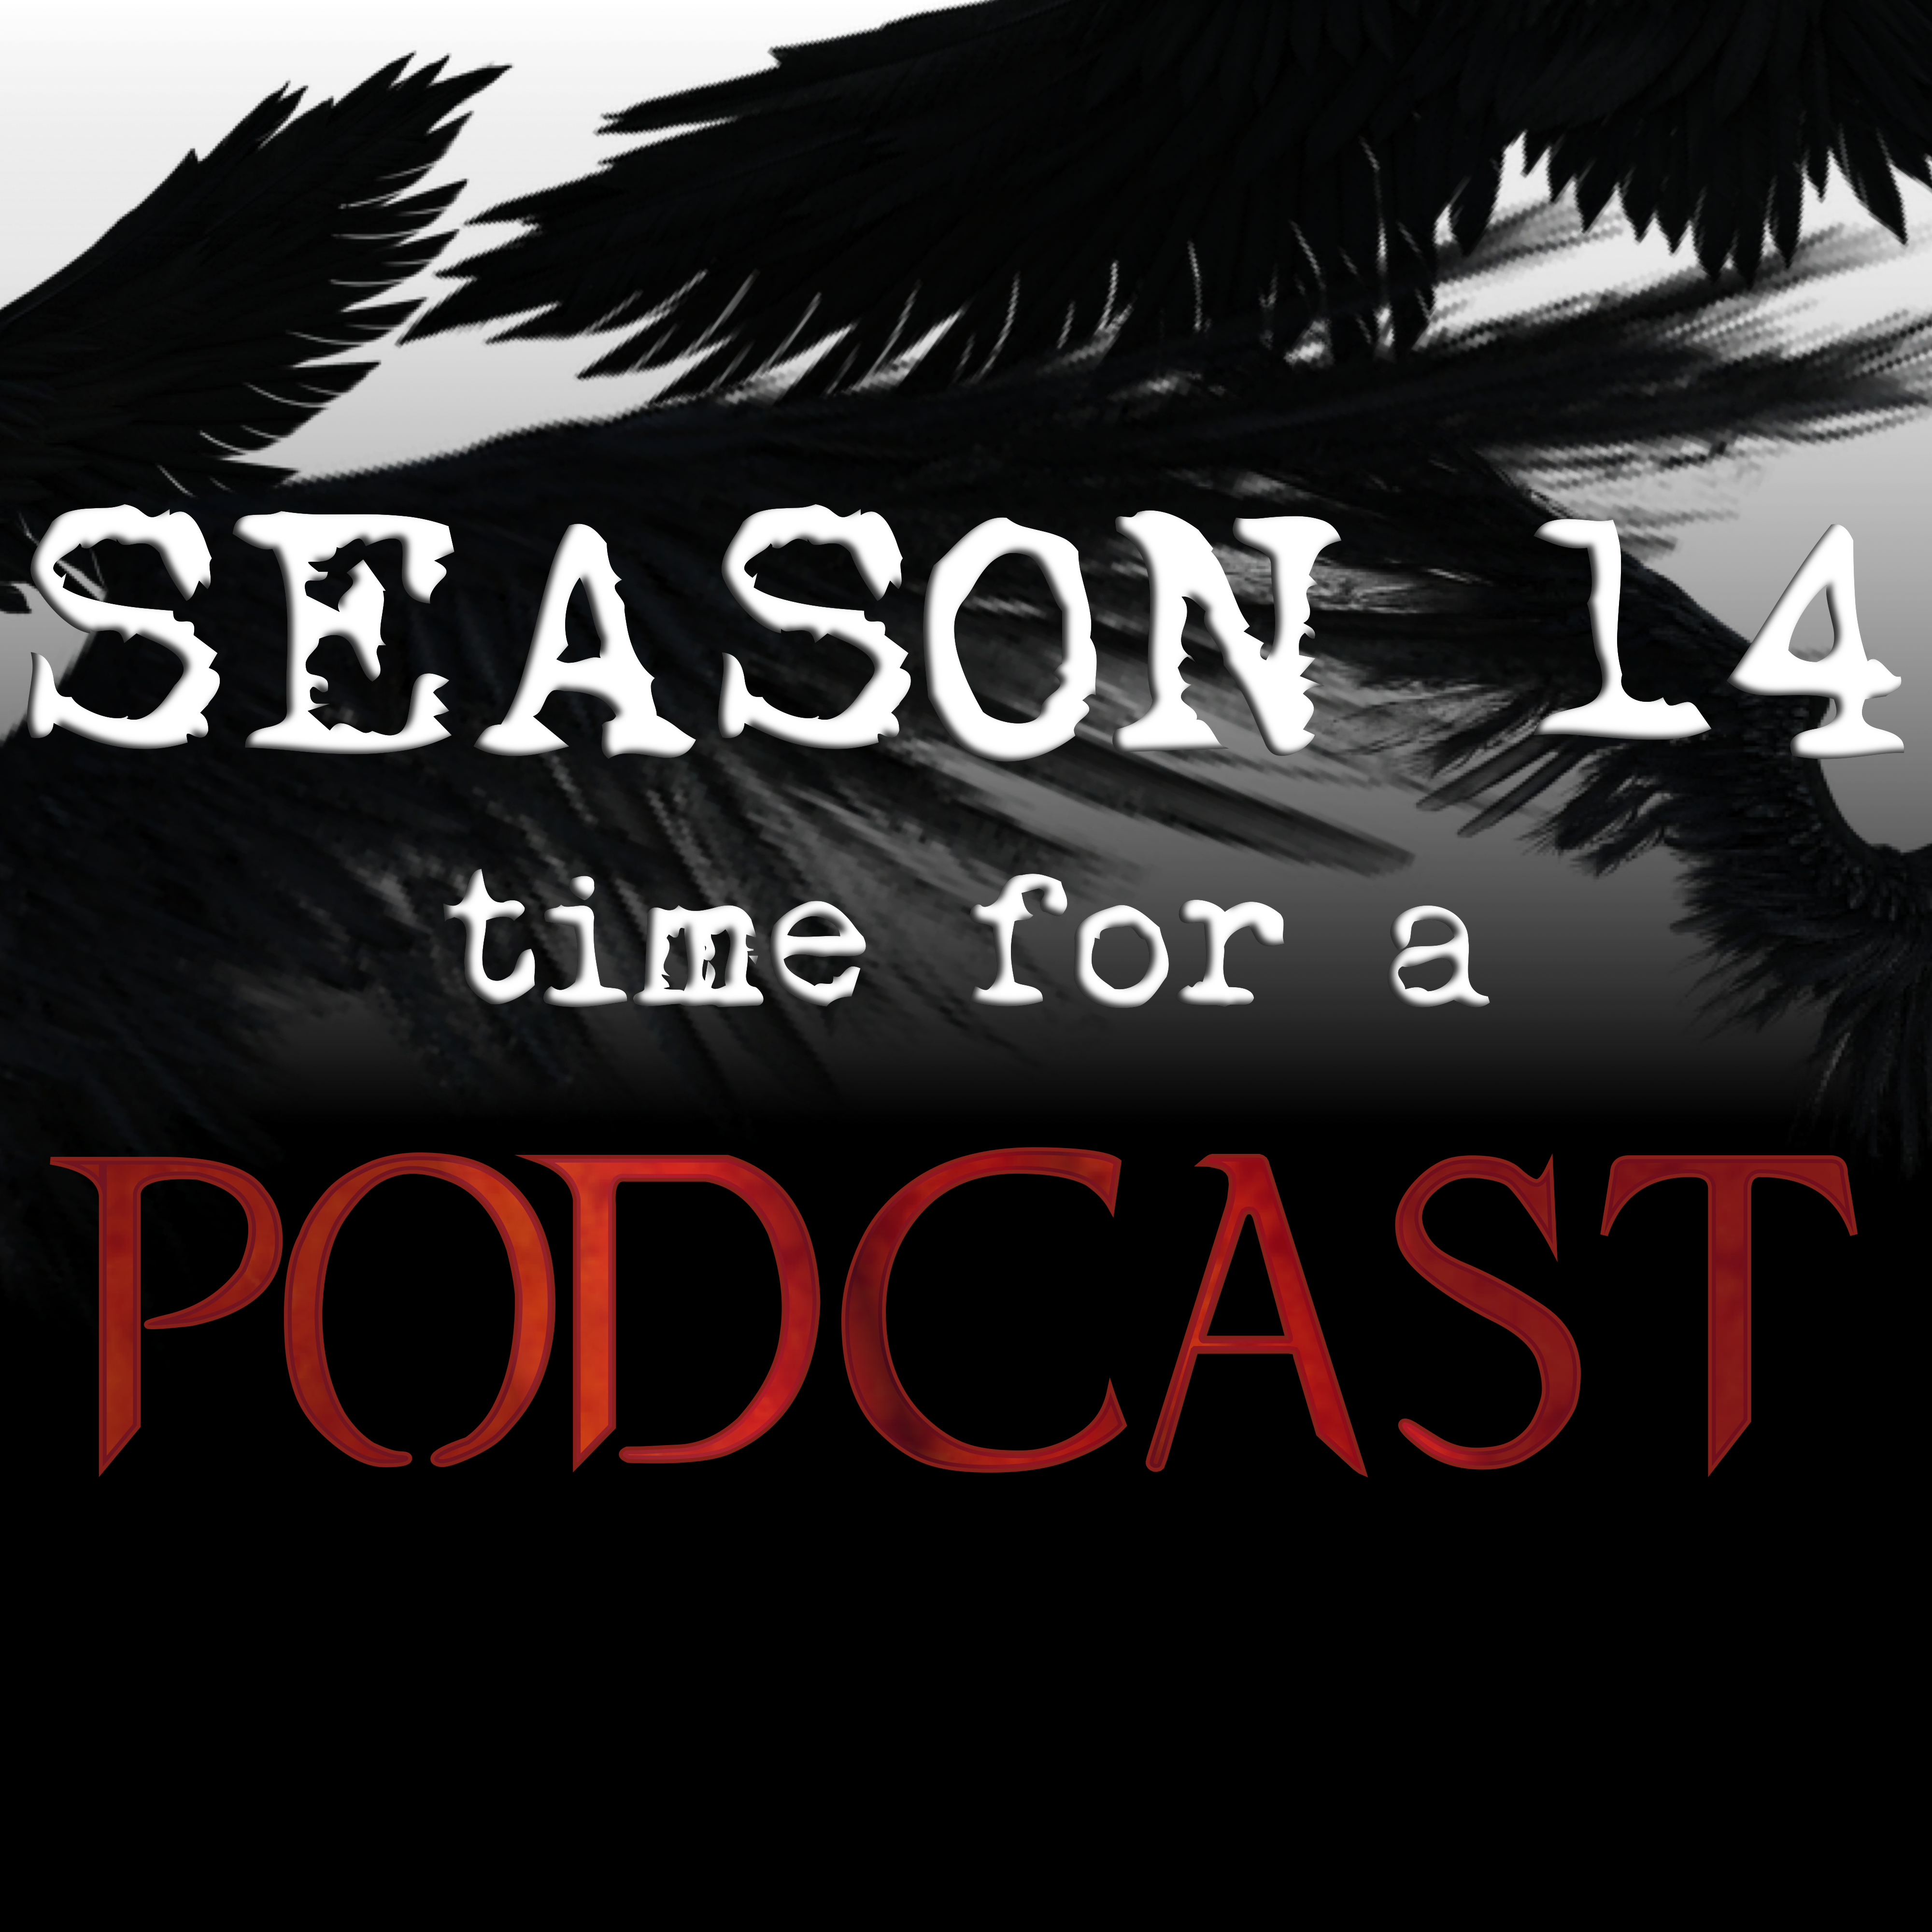 Season 14, Time For A Podcast show art